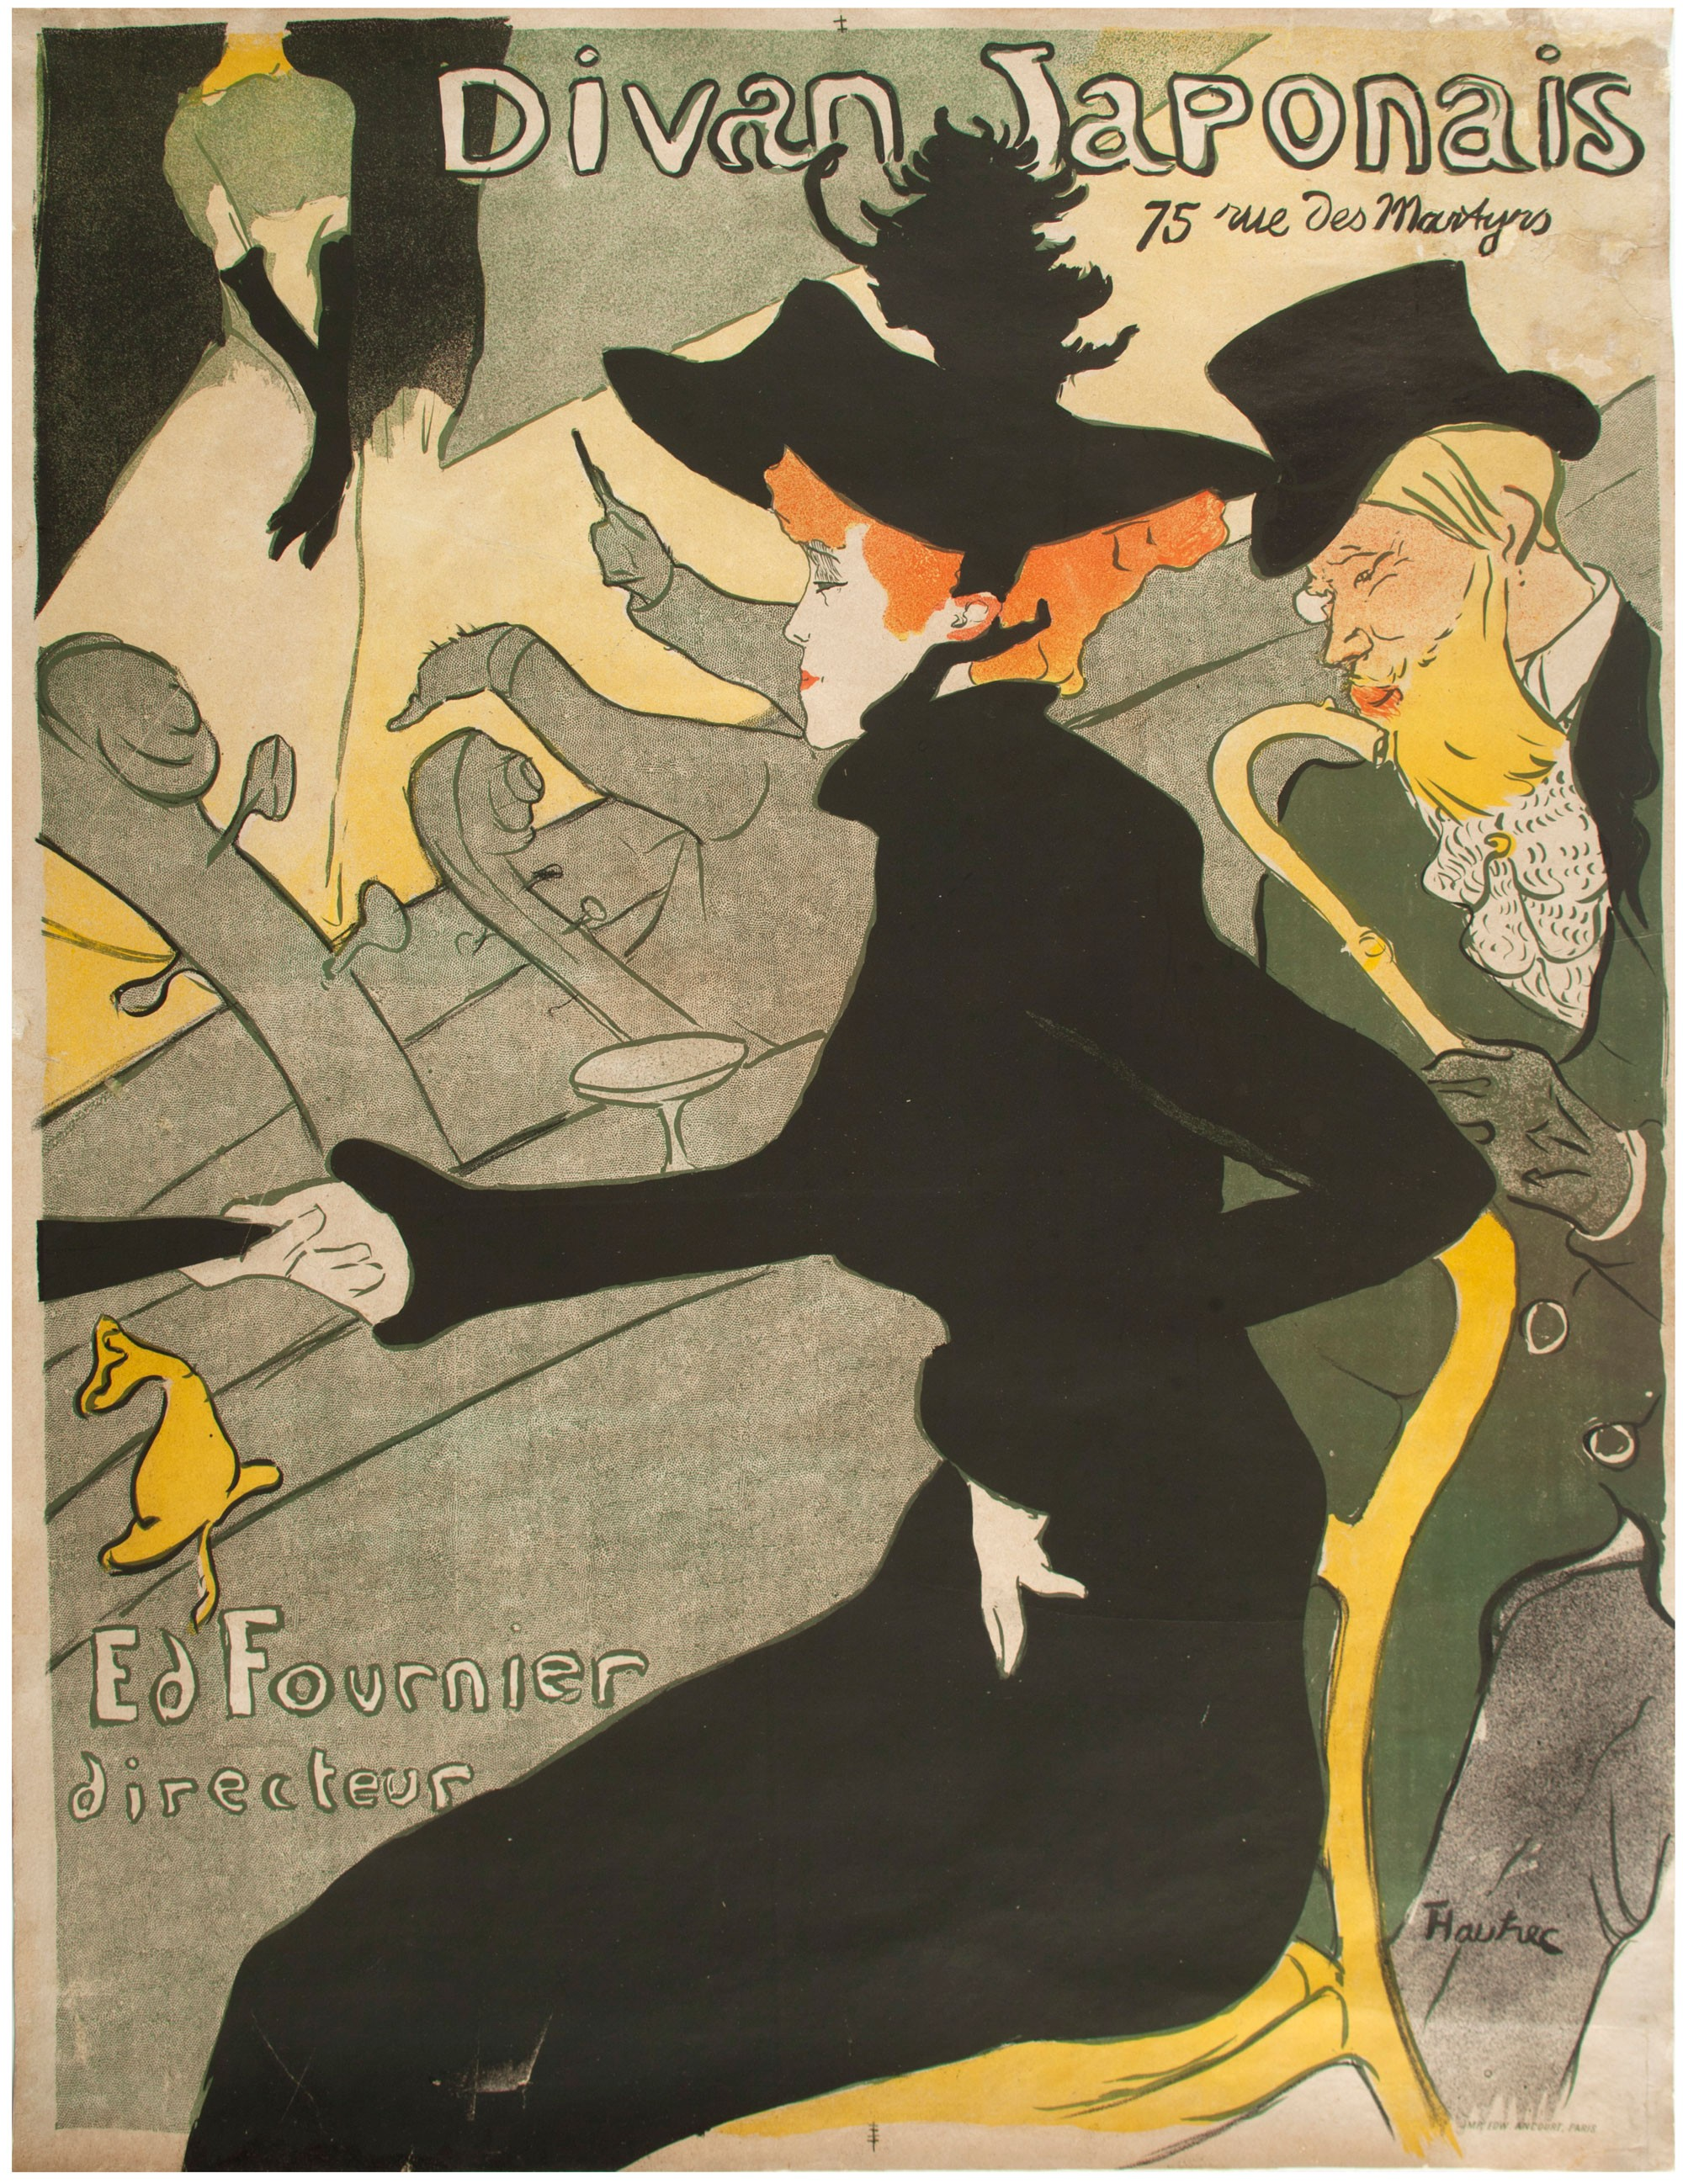 https://upload.wikimedia.org/wikipedia/commons/4/4b/Divan_Japonais_-_Henri_de_Toulouse-Lautrec.jpg